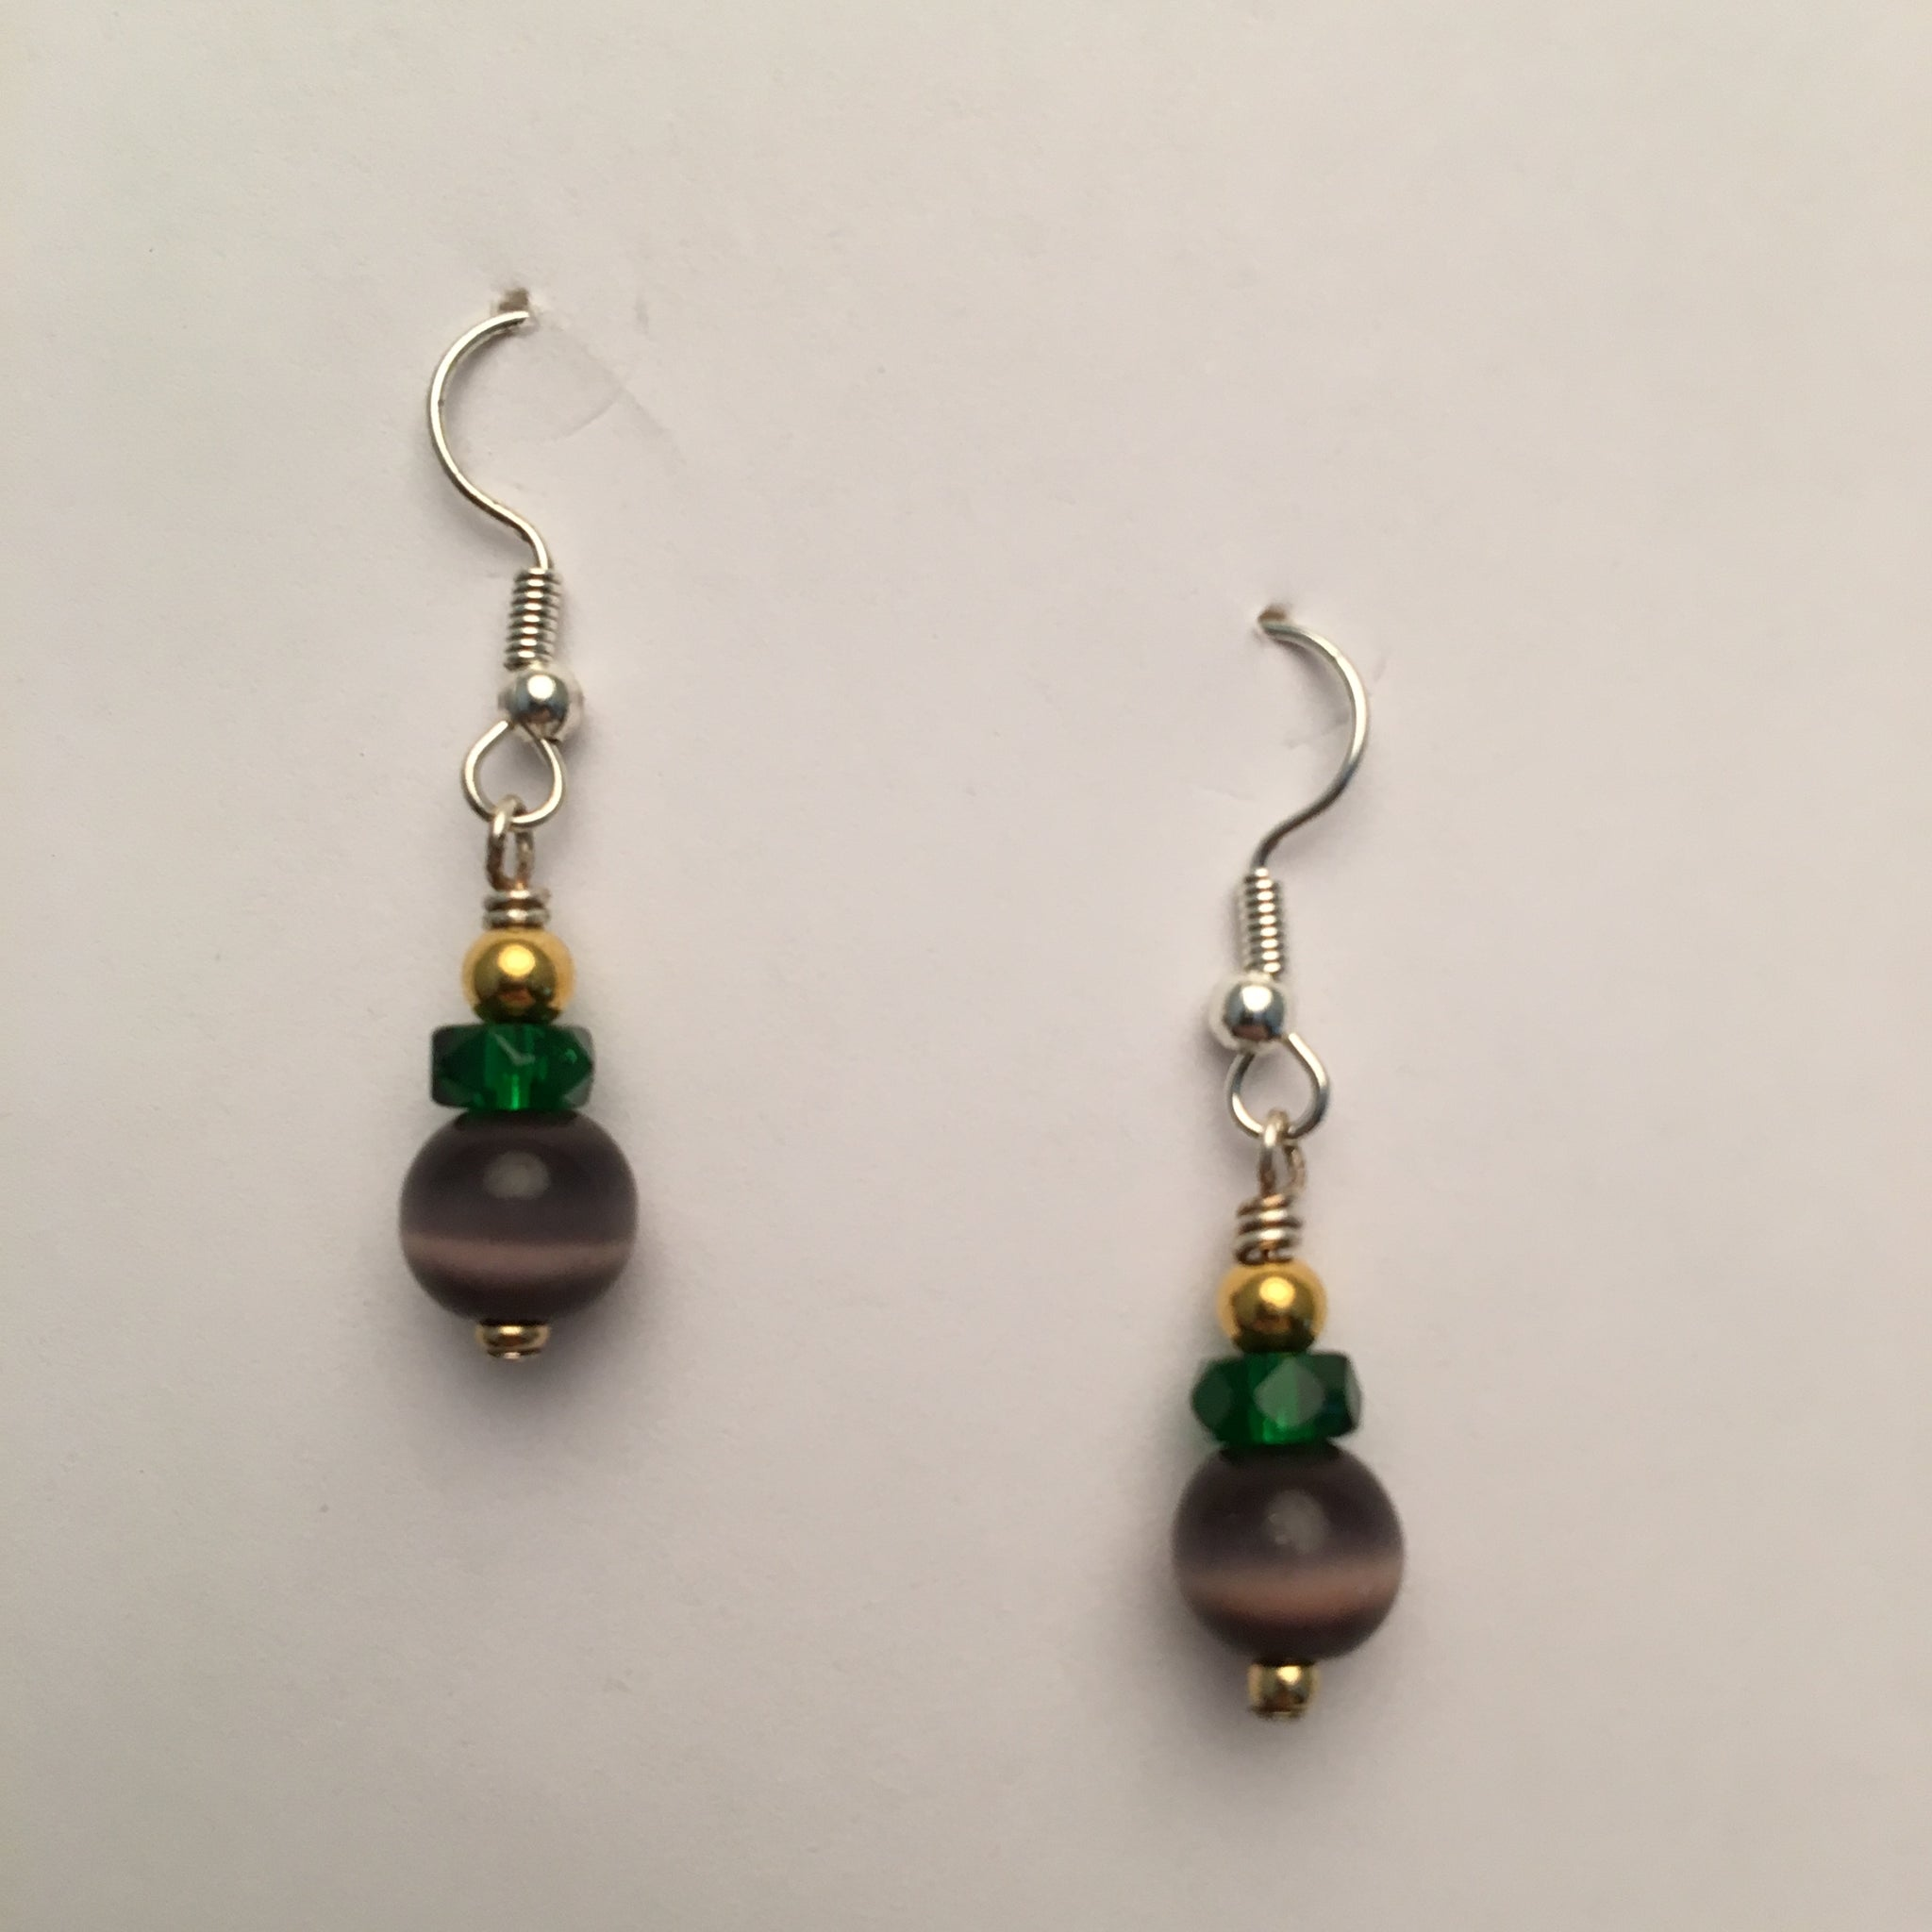 Vintage Beaded Earrings #8